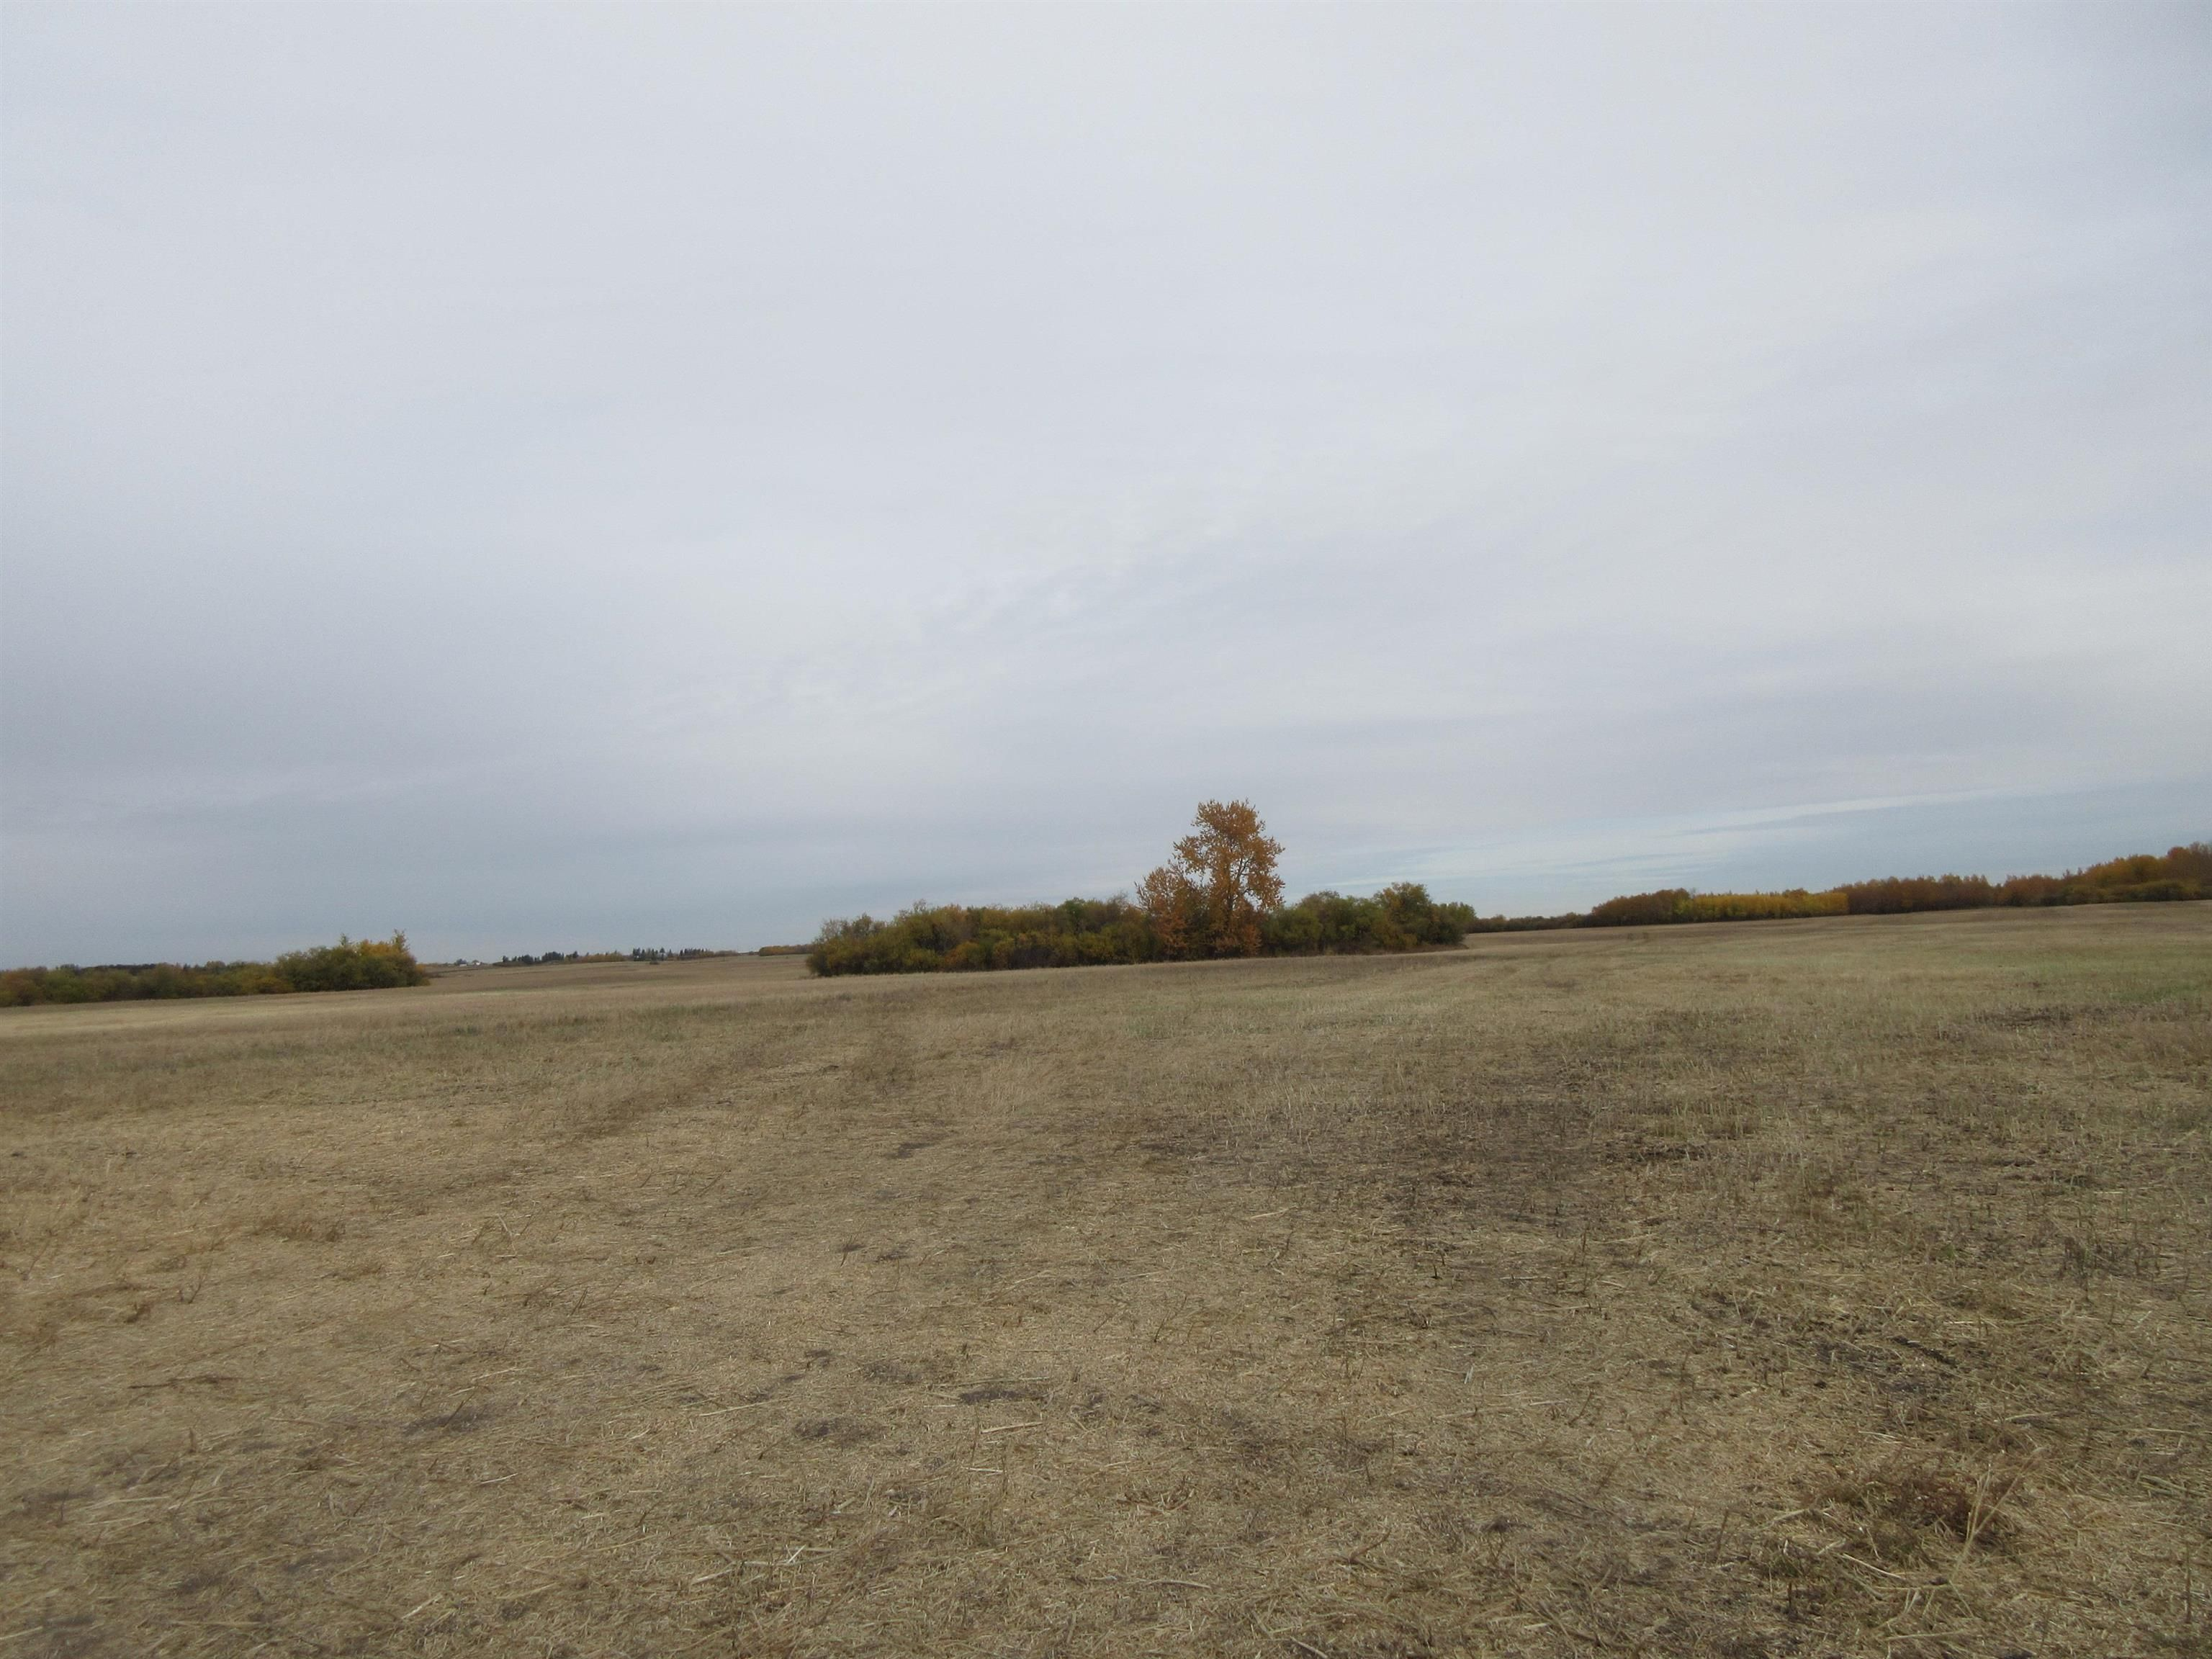 Main Photo: 55101 RR 270: Rural Sturgeon County Rural Land/Vacant Lot for sale : MLS®# E4265205